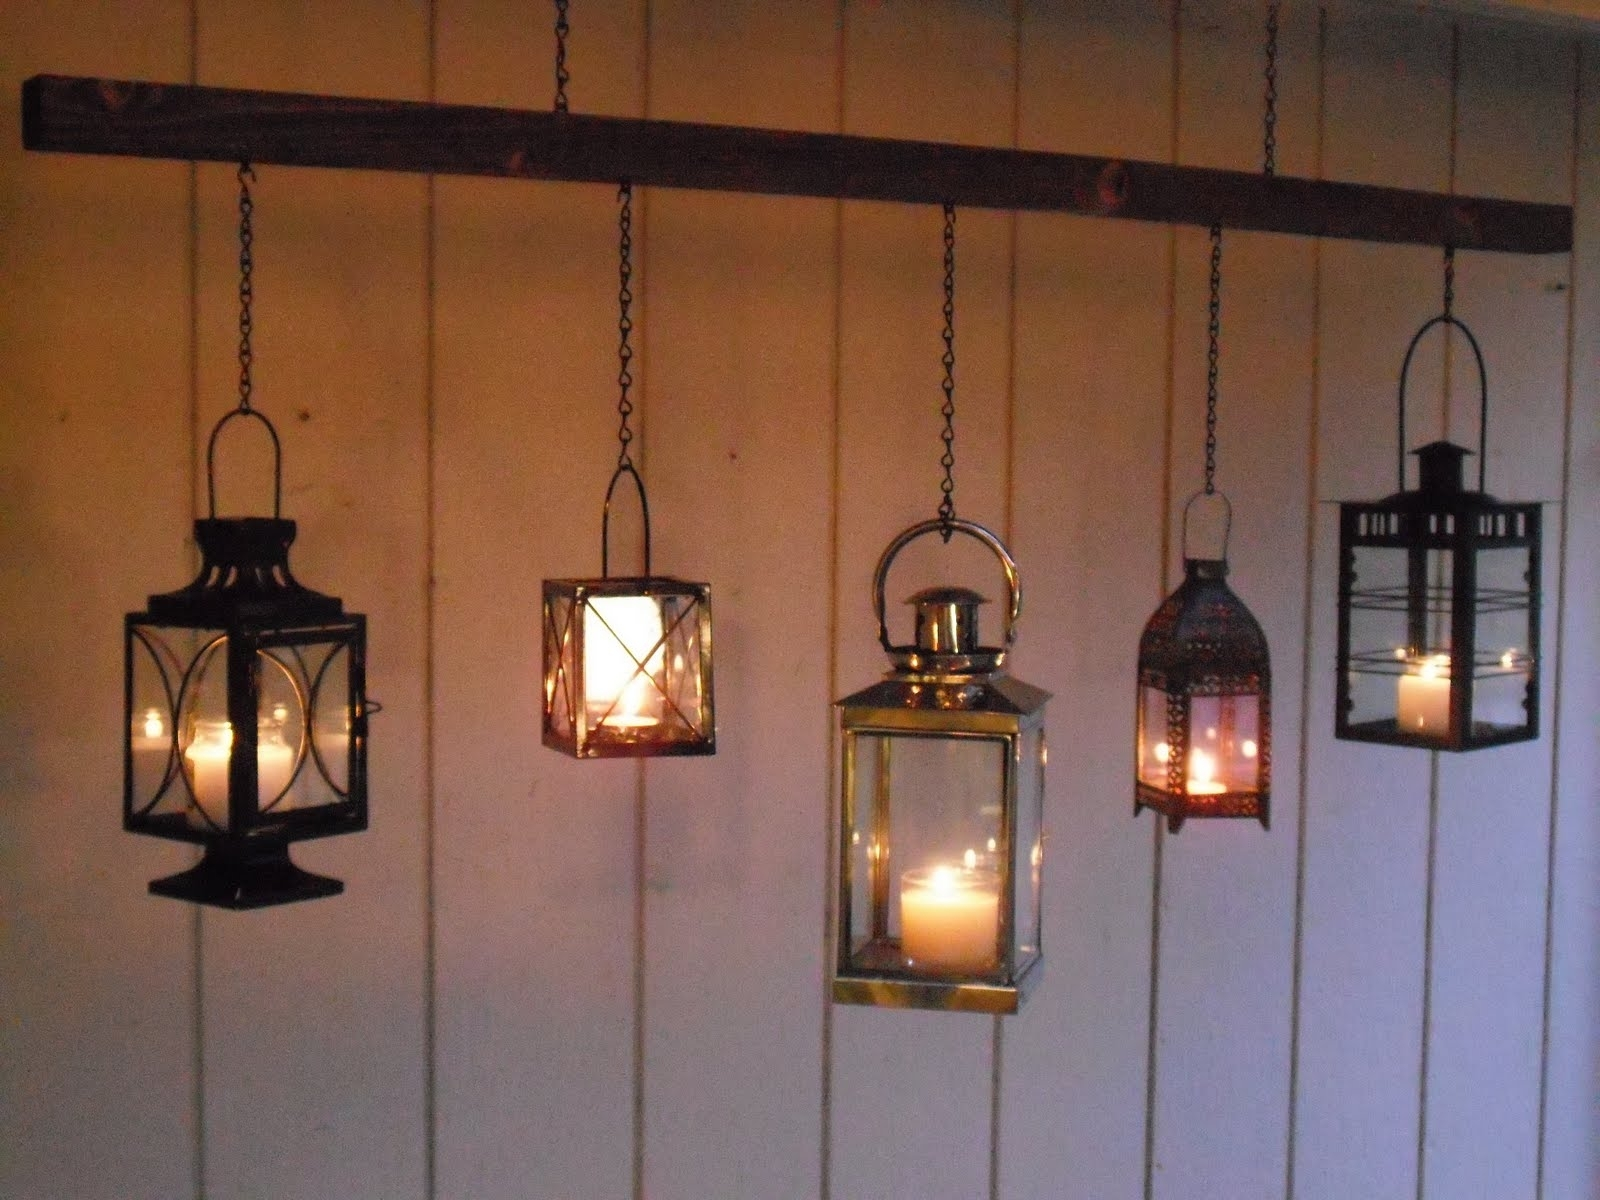 15 Inspirations Of Outdoor Hanging Candle Lanterns